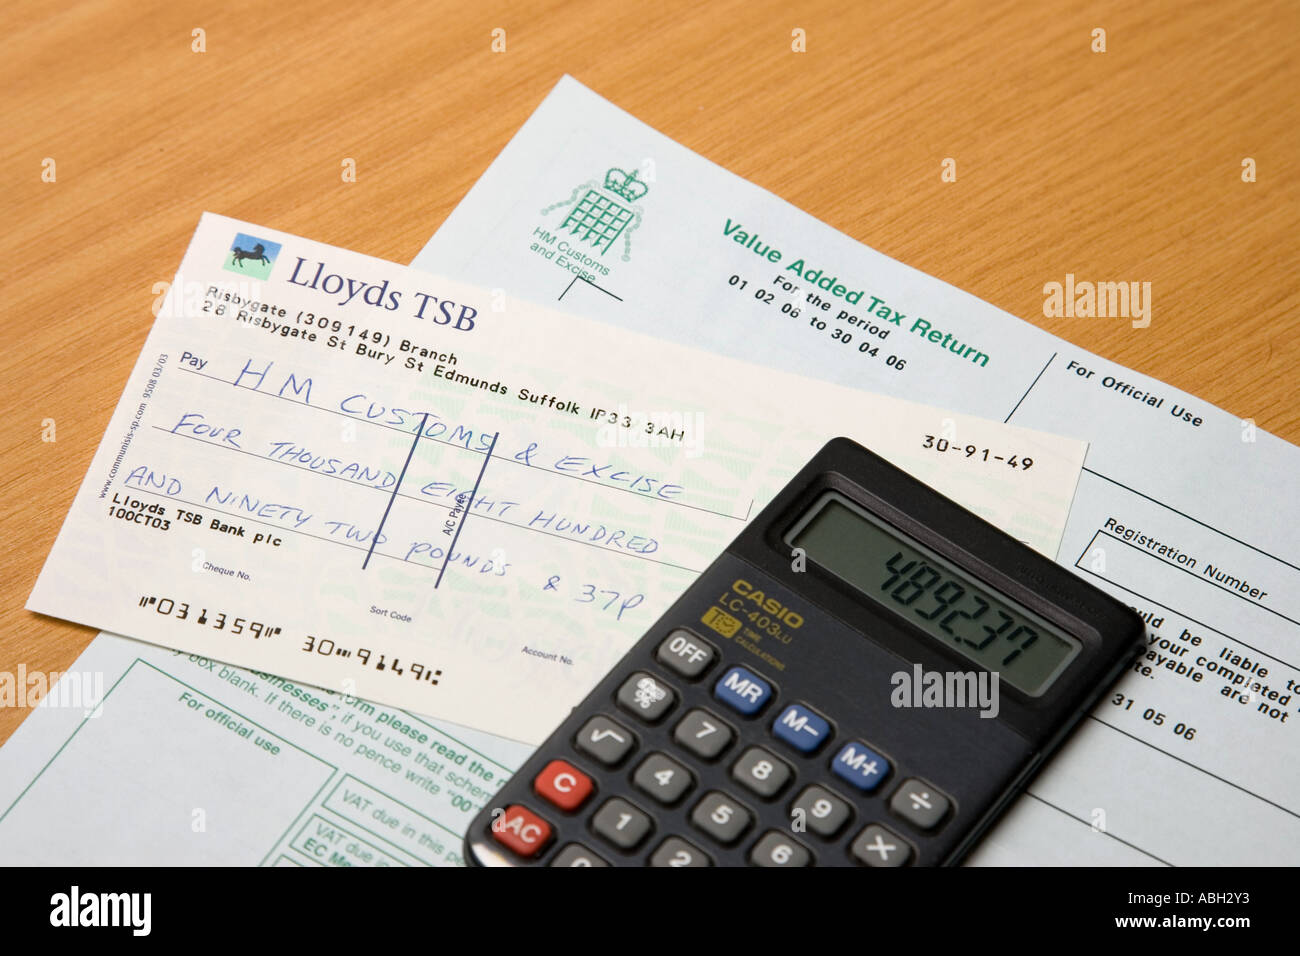 Vat Return Form, Calculator And Cheque Made Out To Hm Customs & Excise  Stock Uk